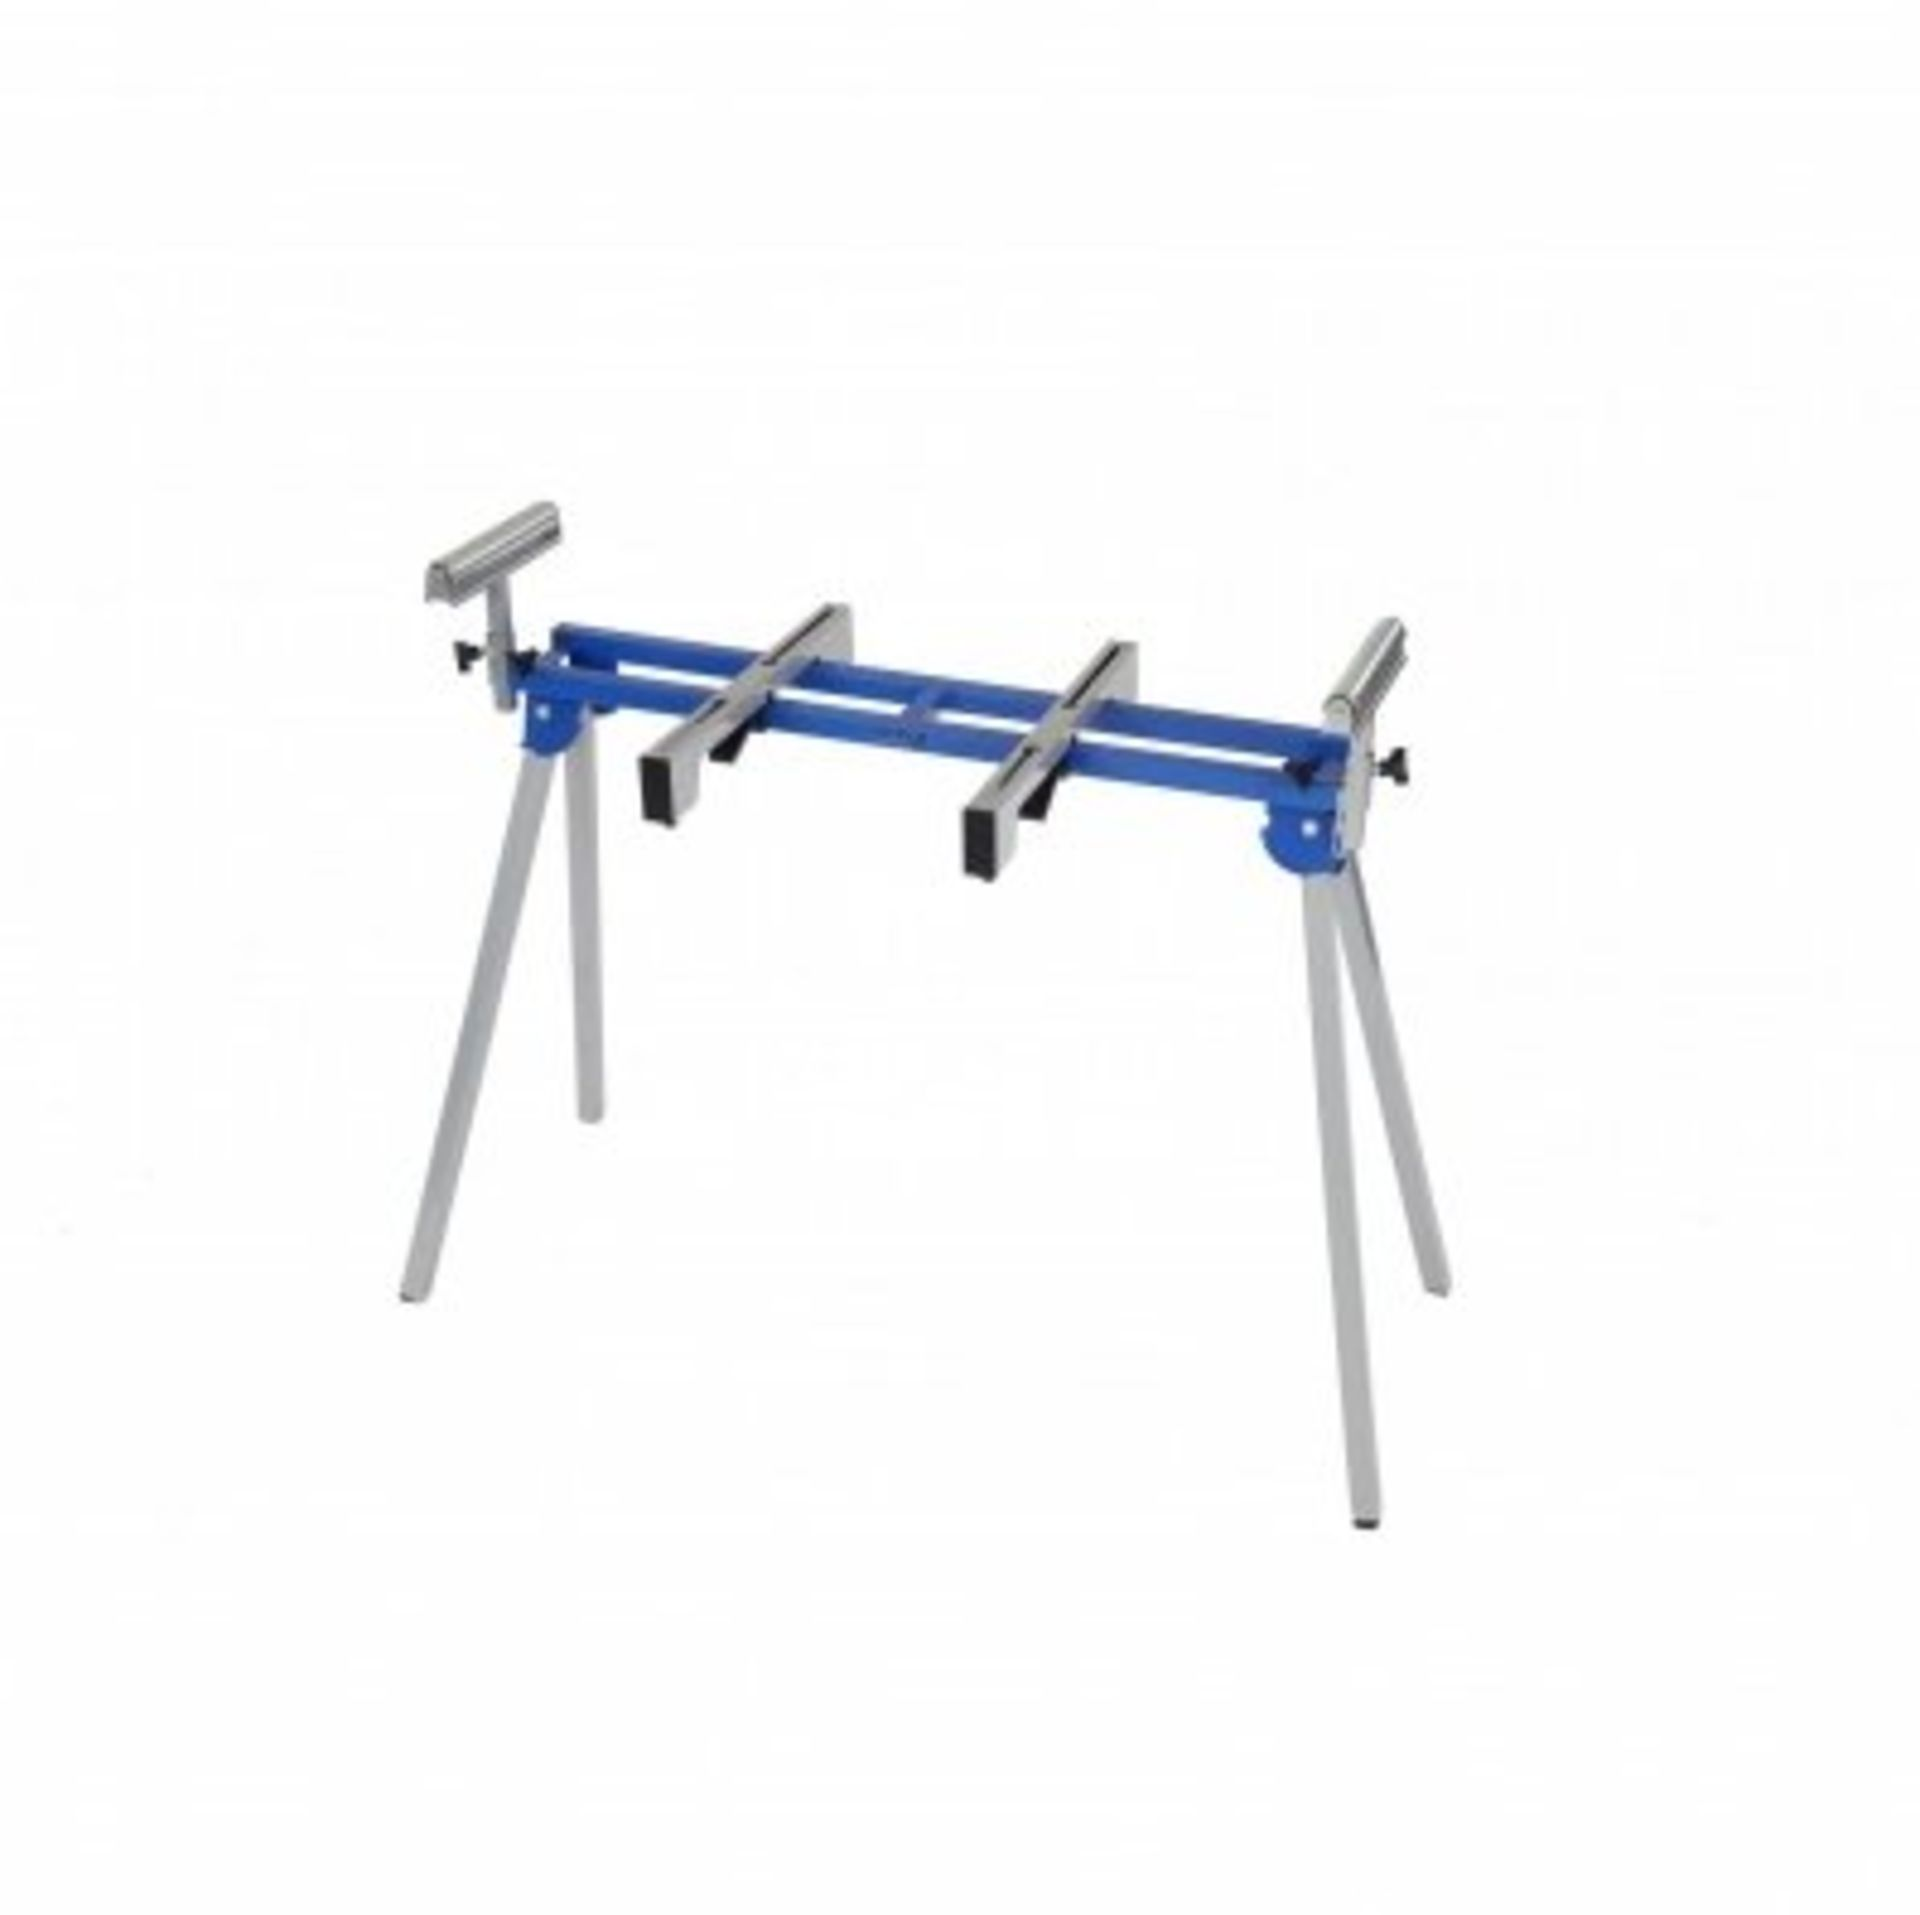 Lot 58 - (RL46) Universal Mitre Saw Stand with Extending Support Arms & Rollers The mitre saw stand...